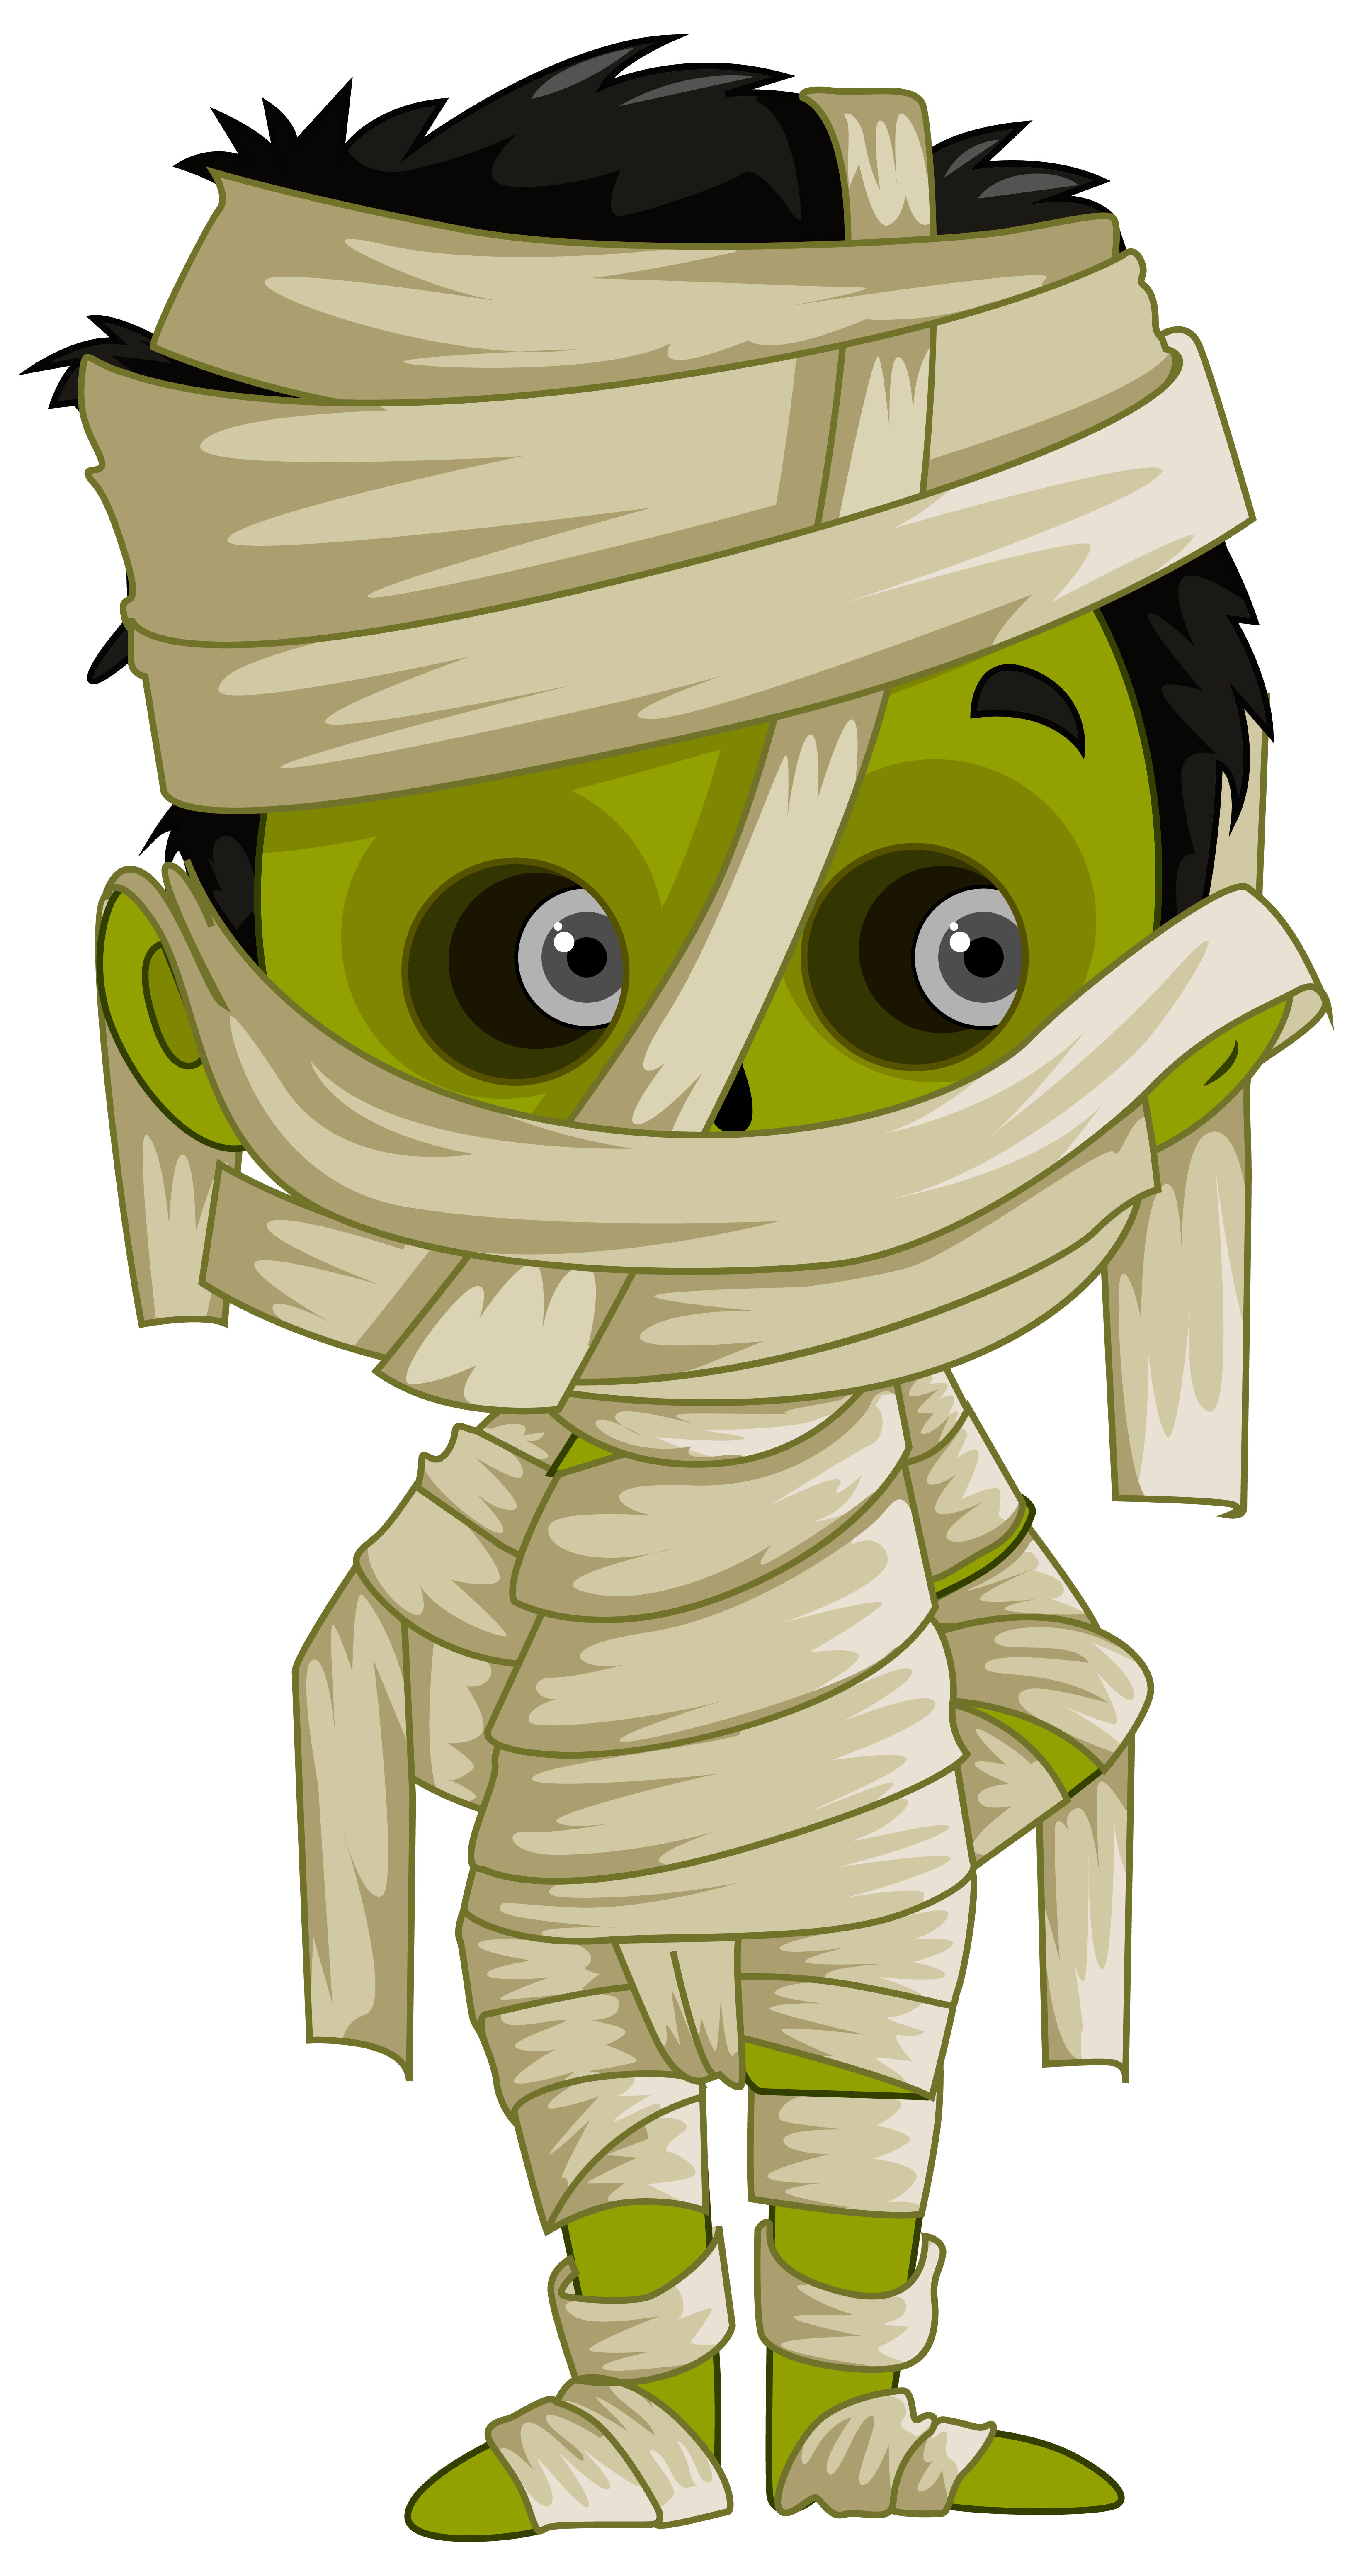 Halloween mummy clipart graphic royalty free download 28+ Collection of Mummy Clipart Png | High quality, free cliparts ... graphic royalty free download